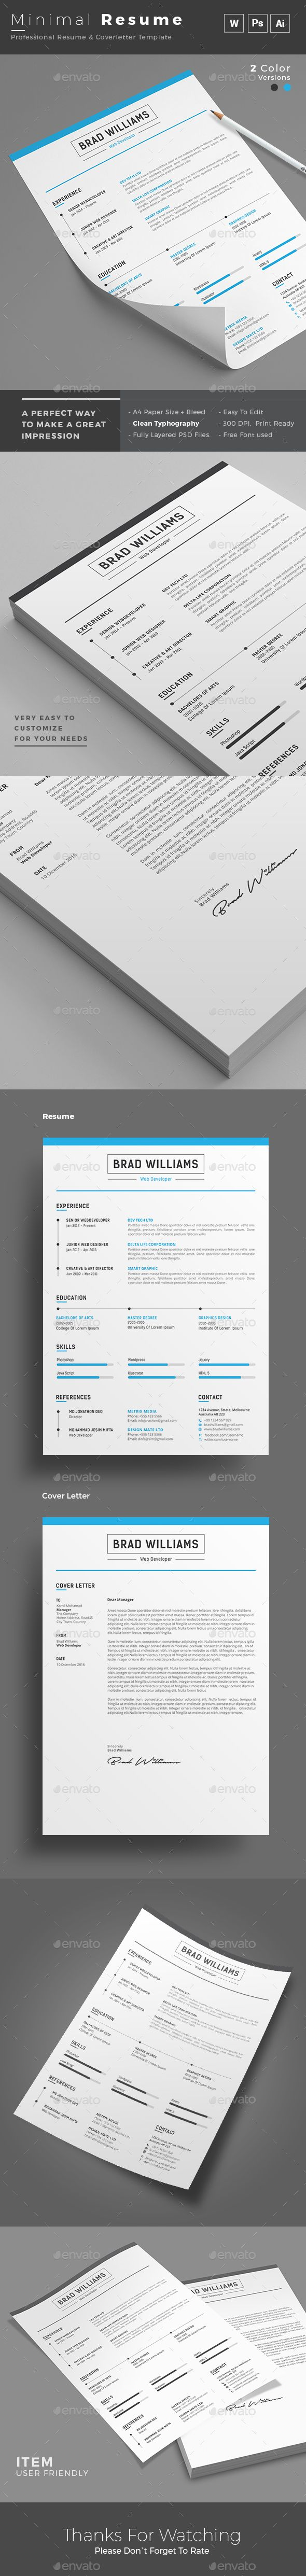 Best Resume Images On   Resume Curriculum And Resume